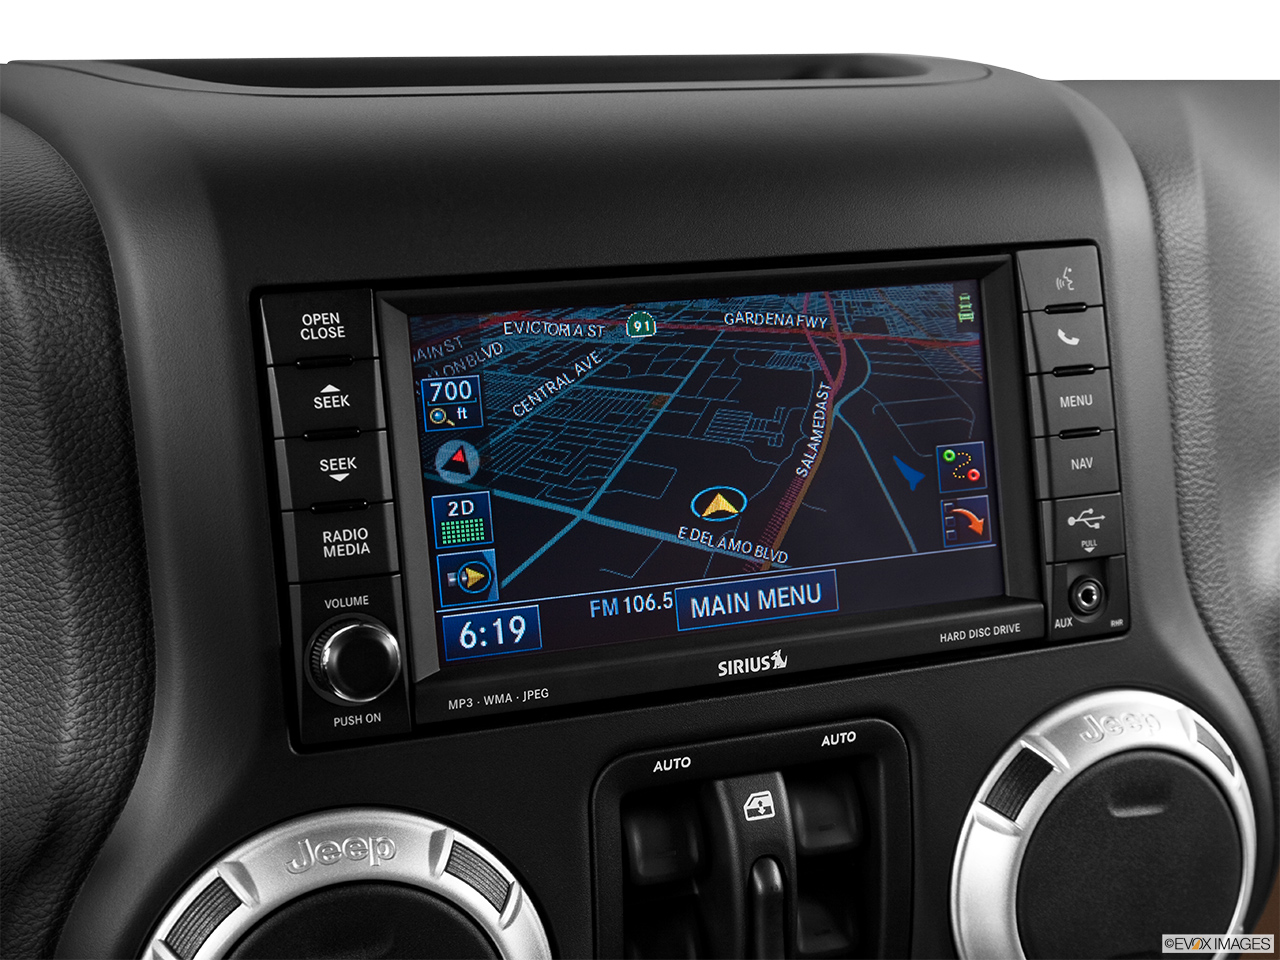 2014 jeep wrangler unlimited 4wd rubicon x driver position view of navigation system